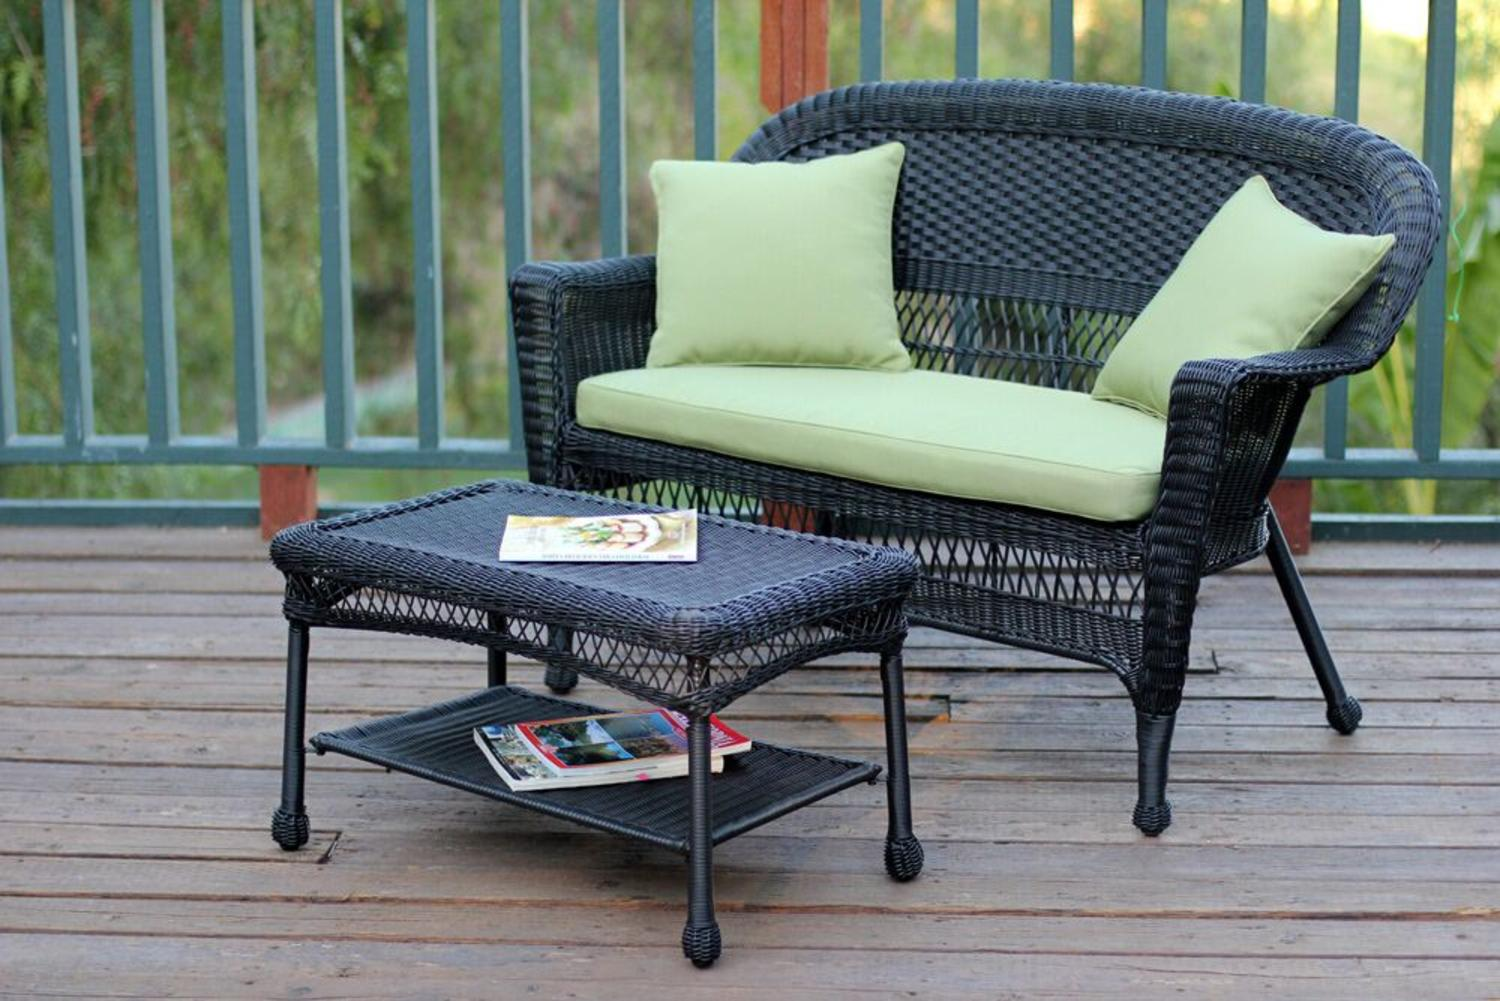 2-Piece Oswald Black Resin Wicker Patio Loveseat and Coffee Table Set Green Cushion by CC Outdoor Living